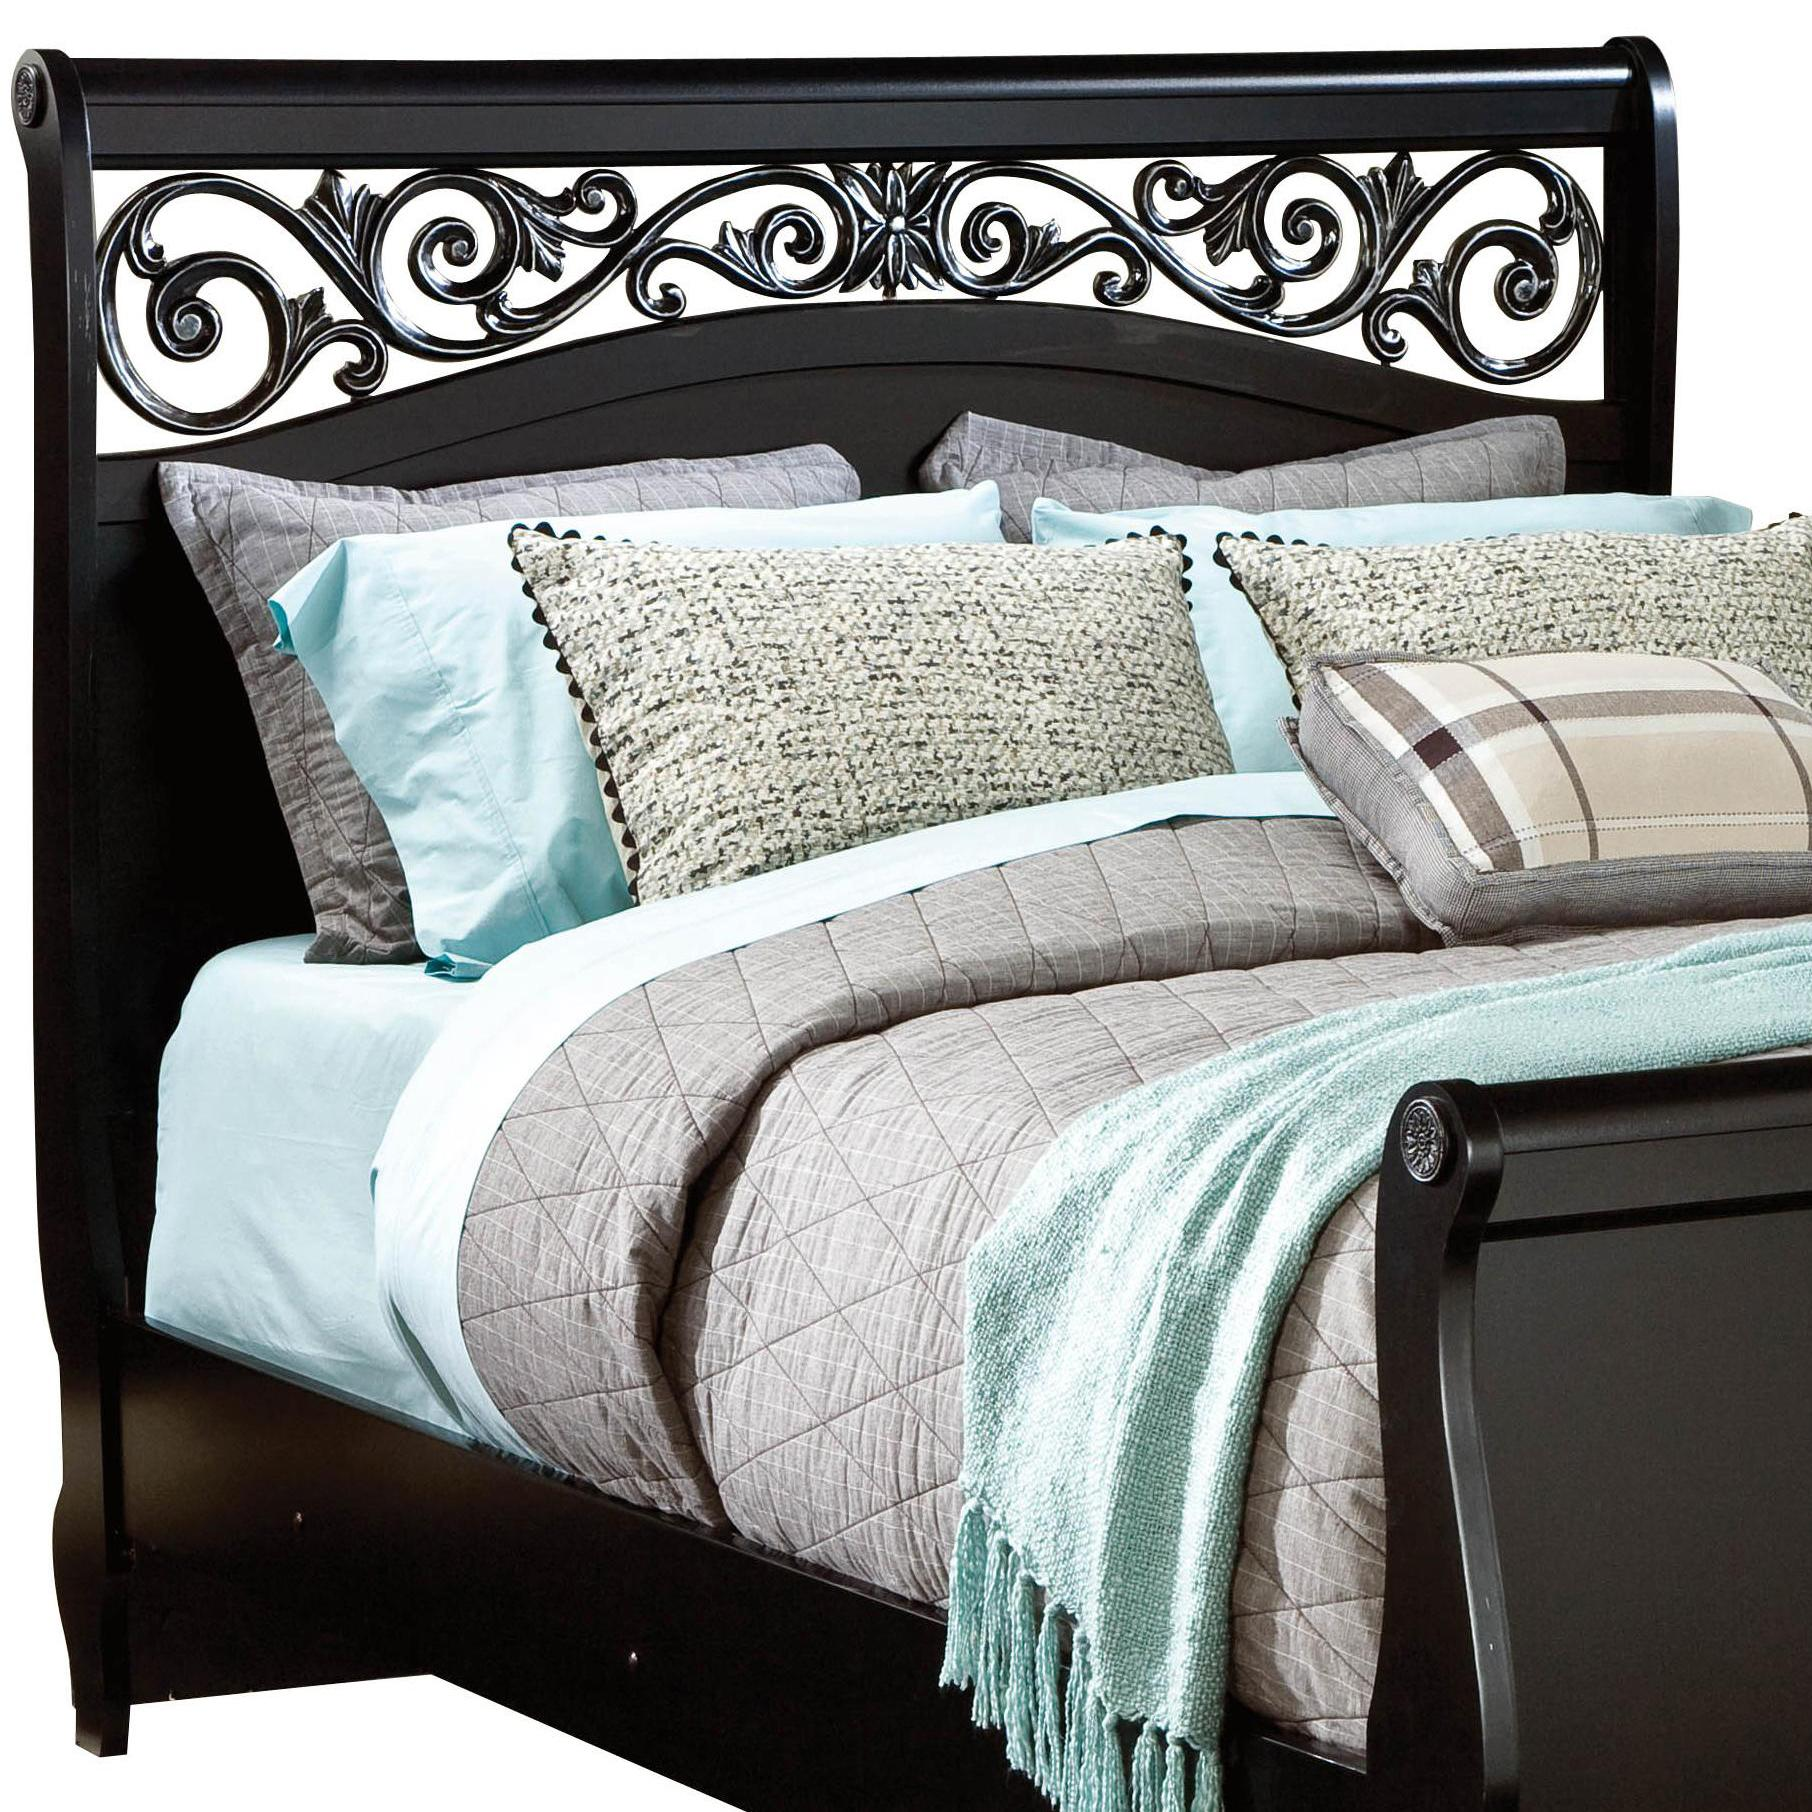 Standard Furniture Madera Queen Sleigh Headboard with Plastic Grille - Item Number: 54552